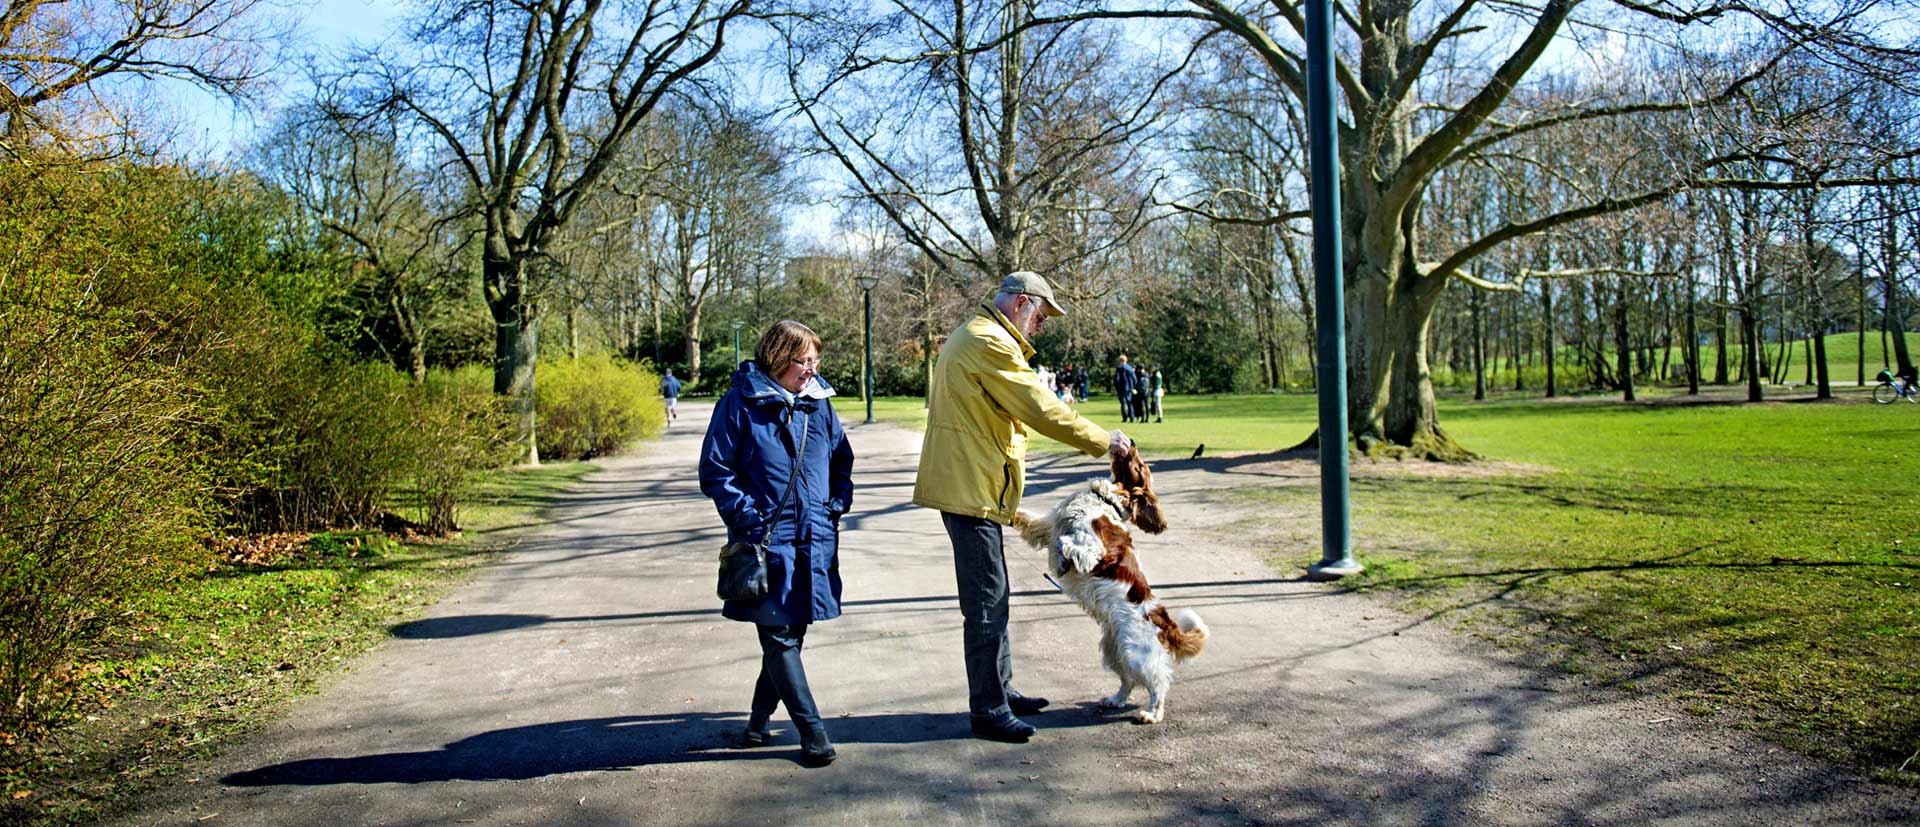 Elder couple walking in a park with a dog